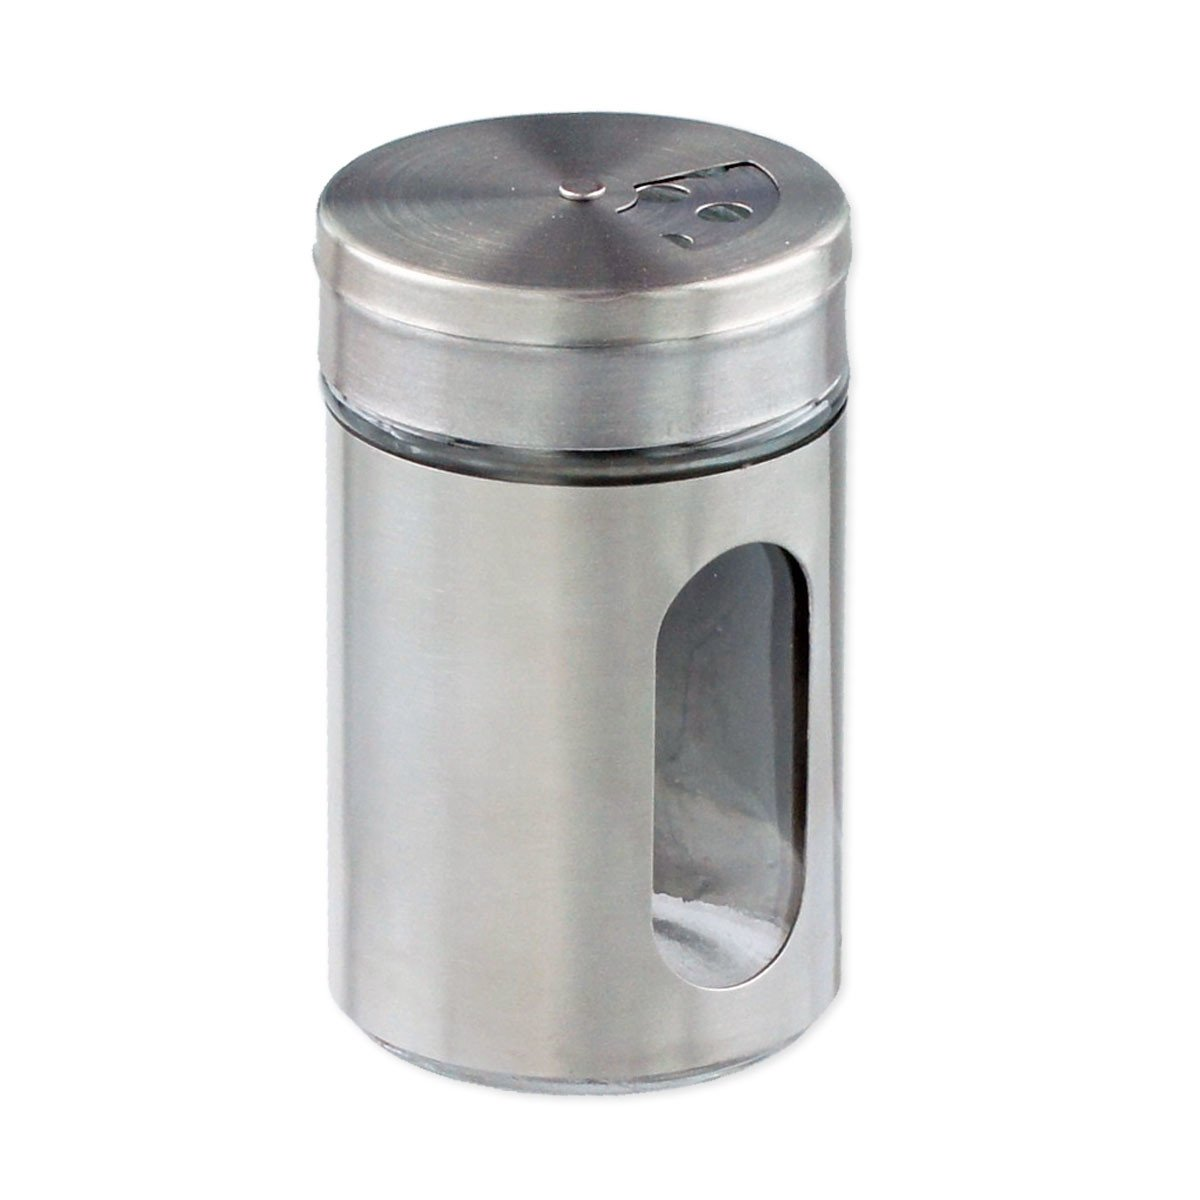 Chrome Spice Shakers by RSVP